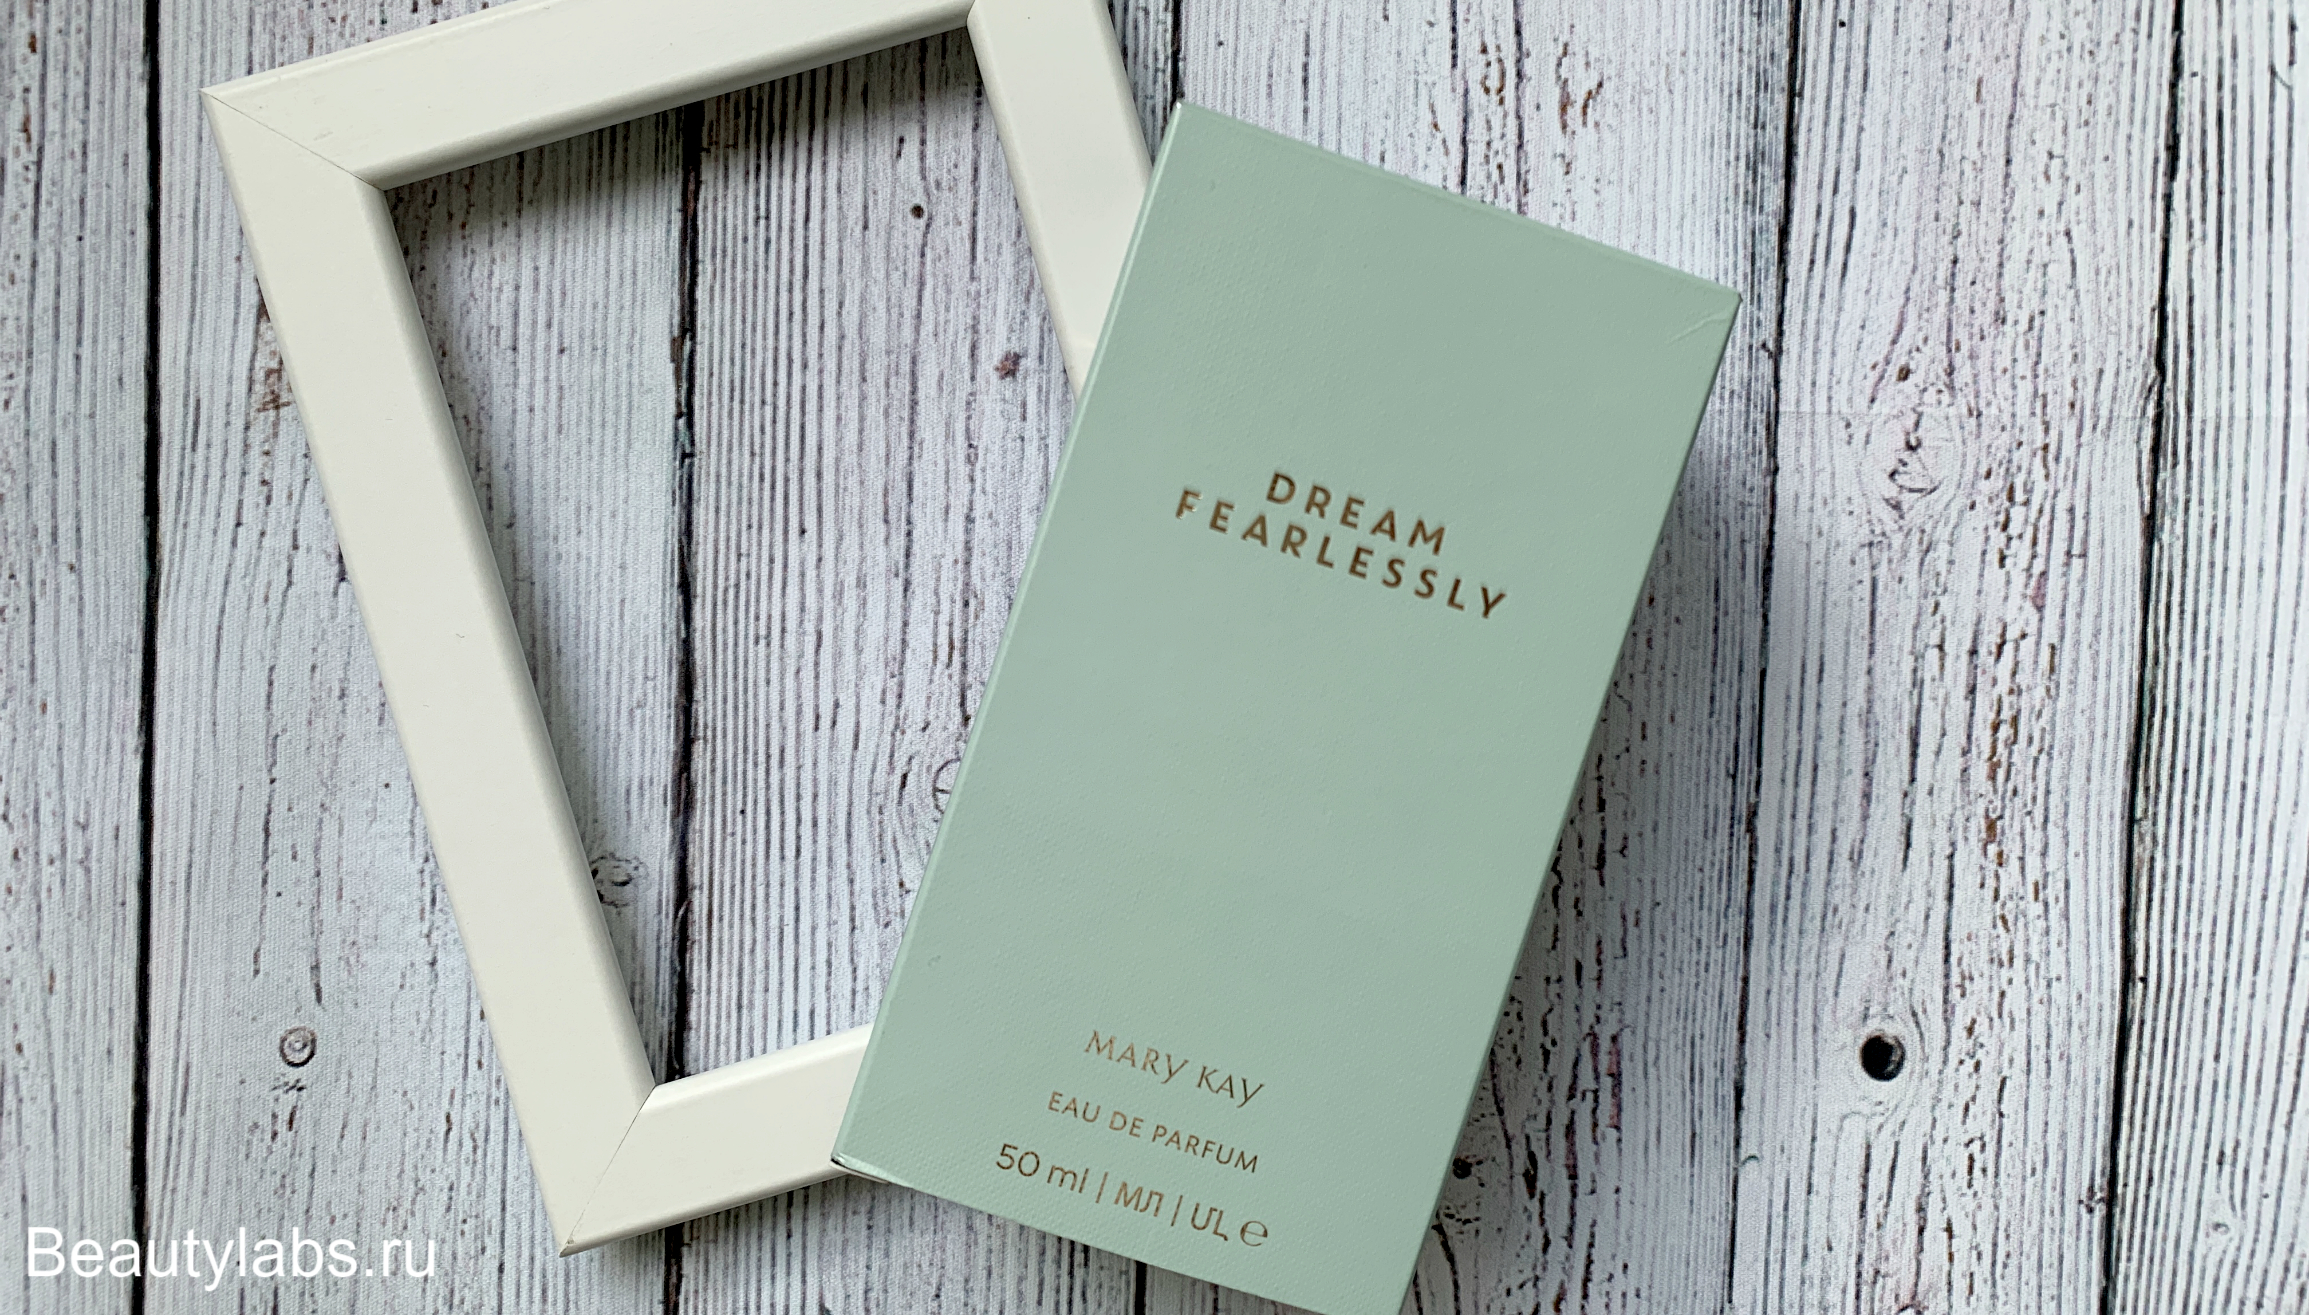 Парфюмерная вода Mary Kay Dream Fearlessly